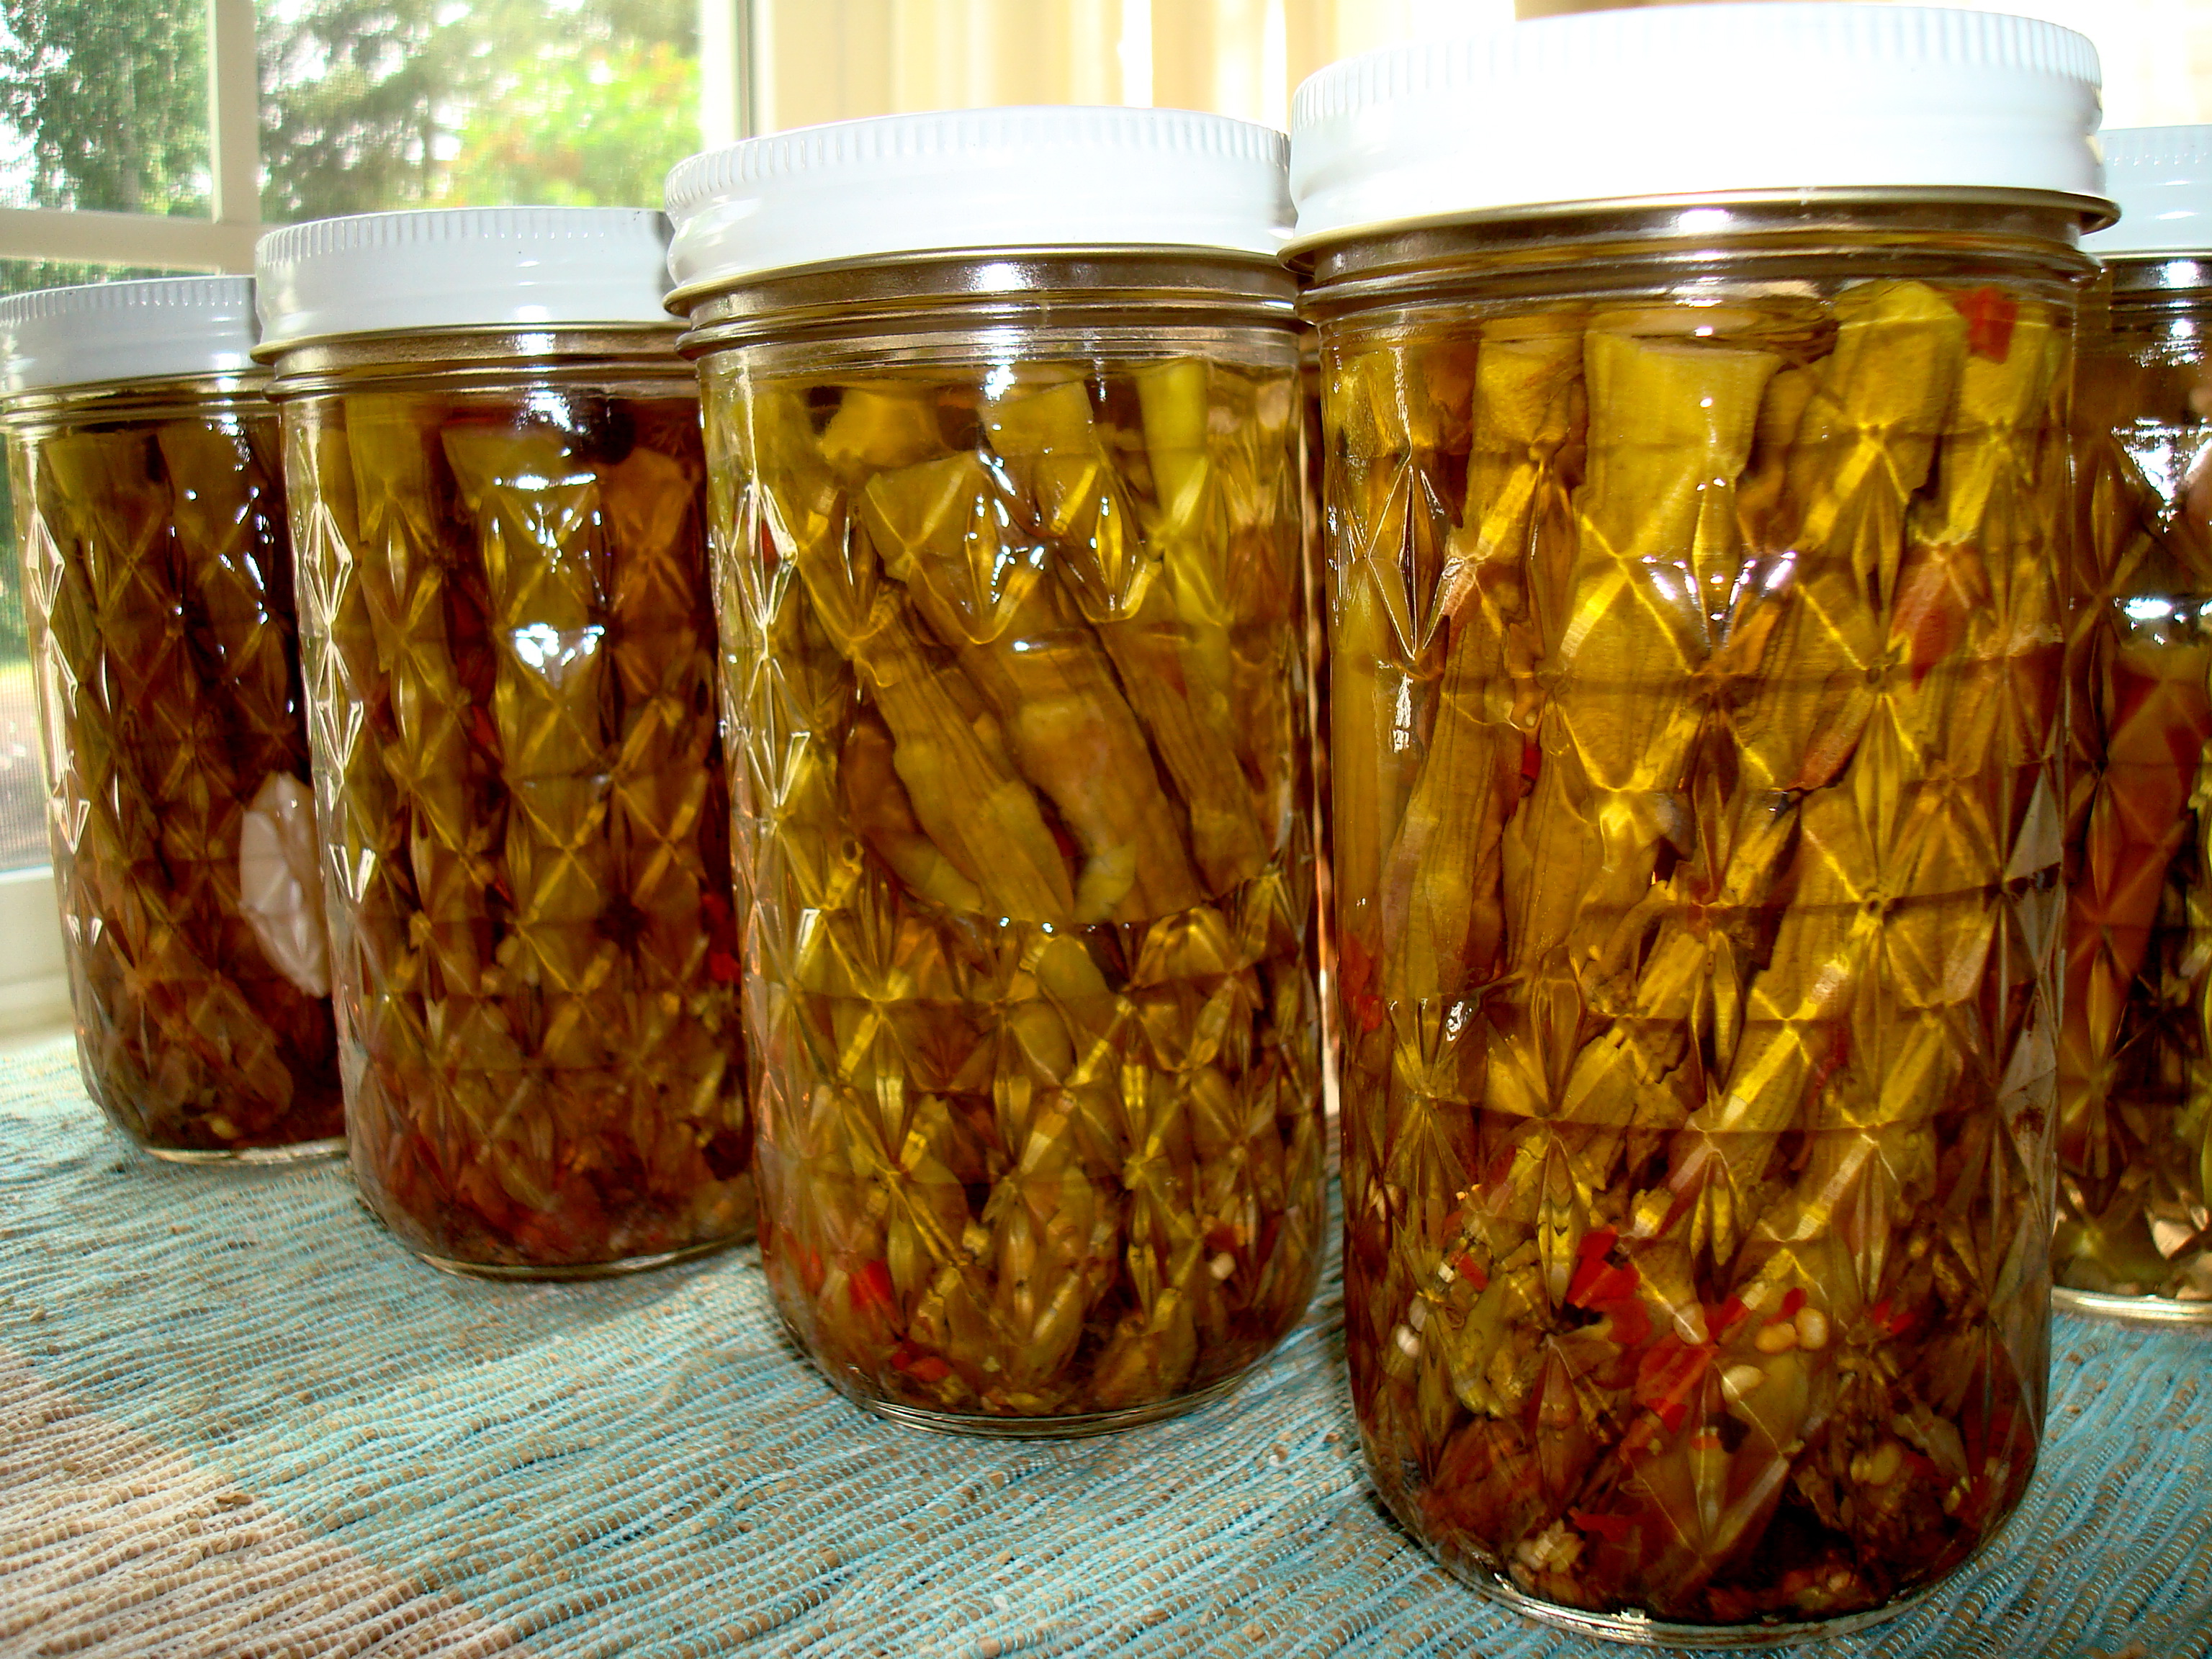 Dilly pickles I boiling-water canned at home